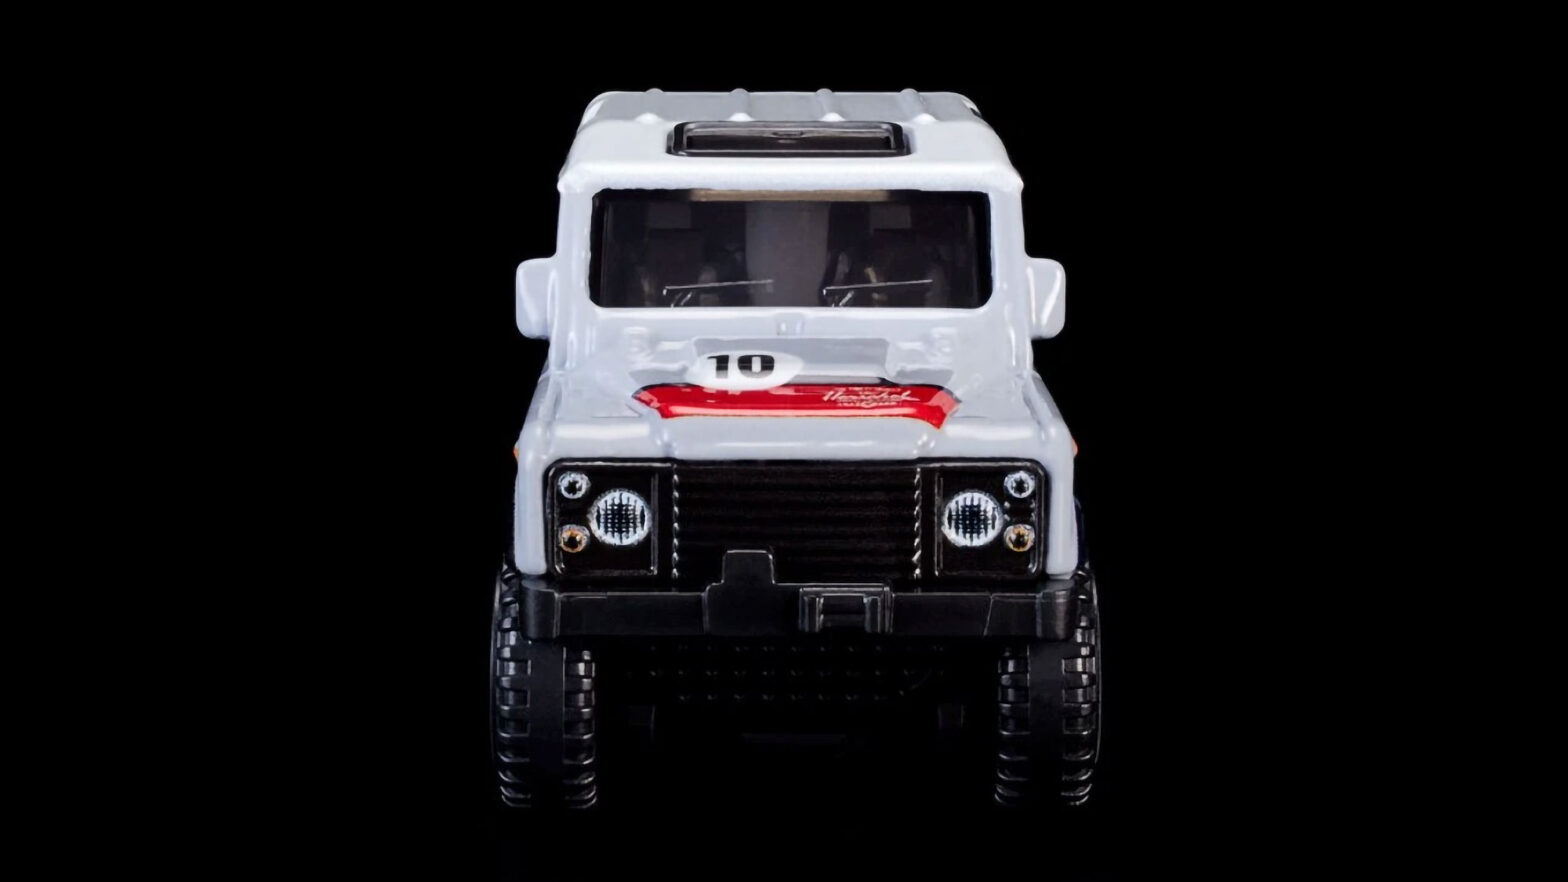 Herschel x Hot Wheels Land Rover Defender 90